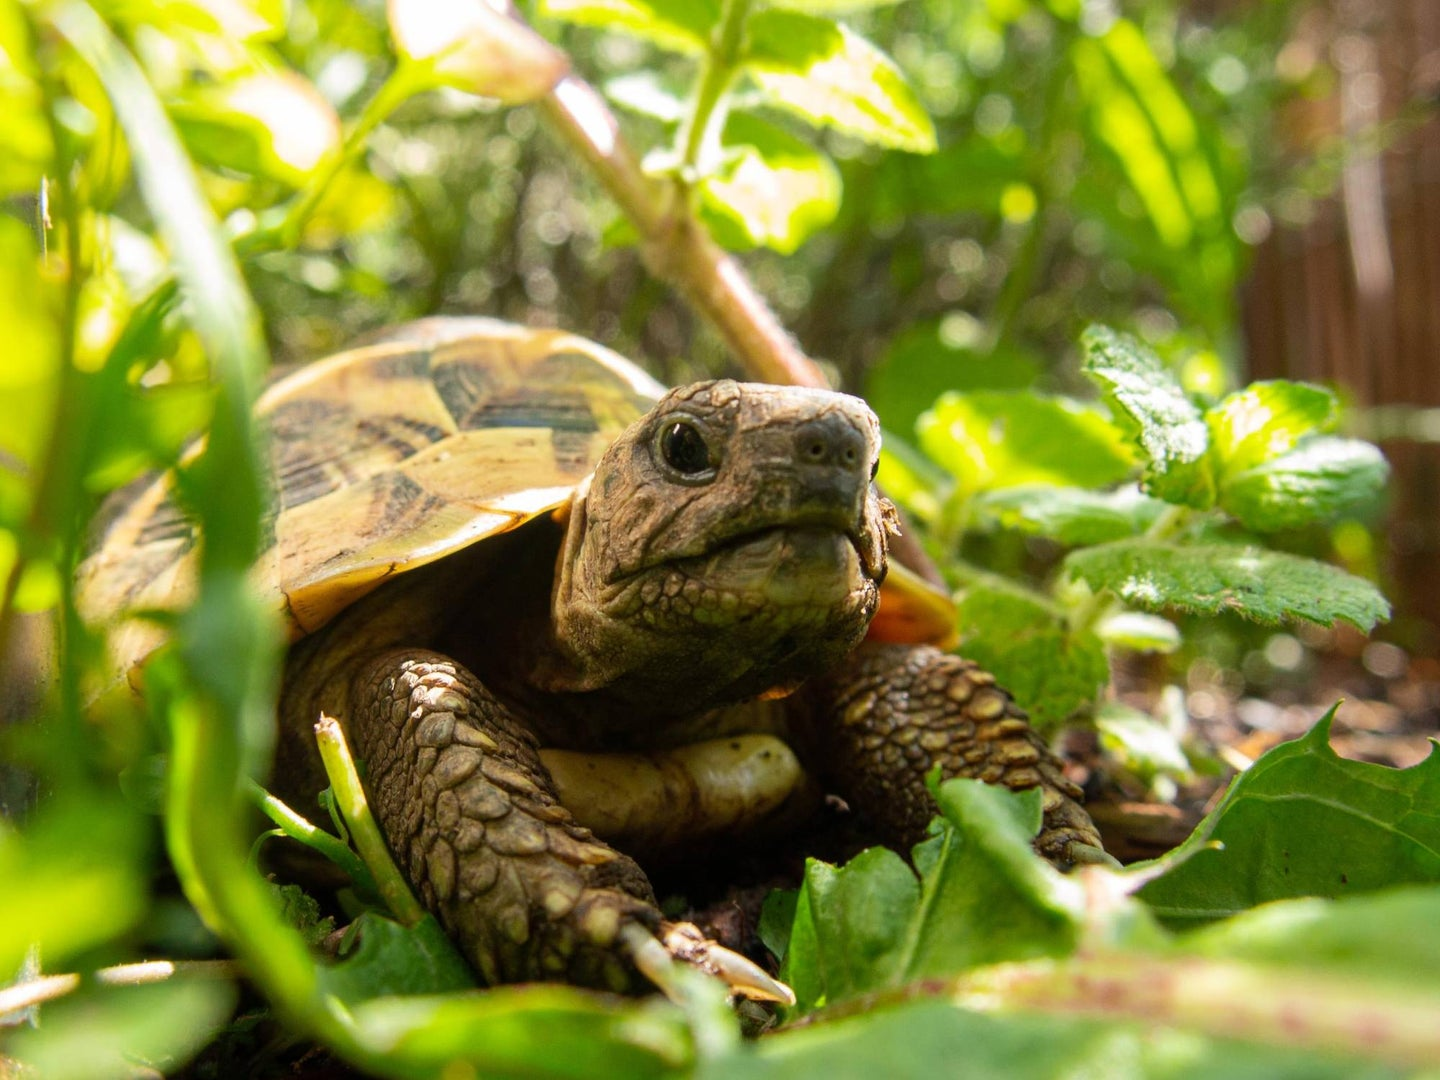 Tortoise on the ground surrounded by plants